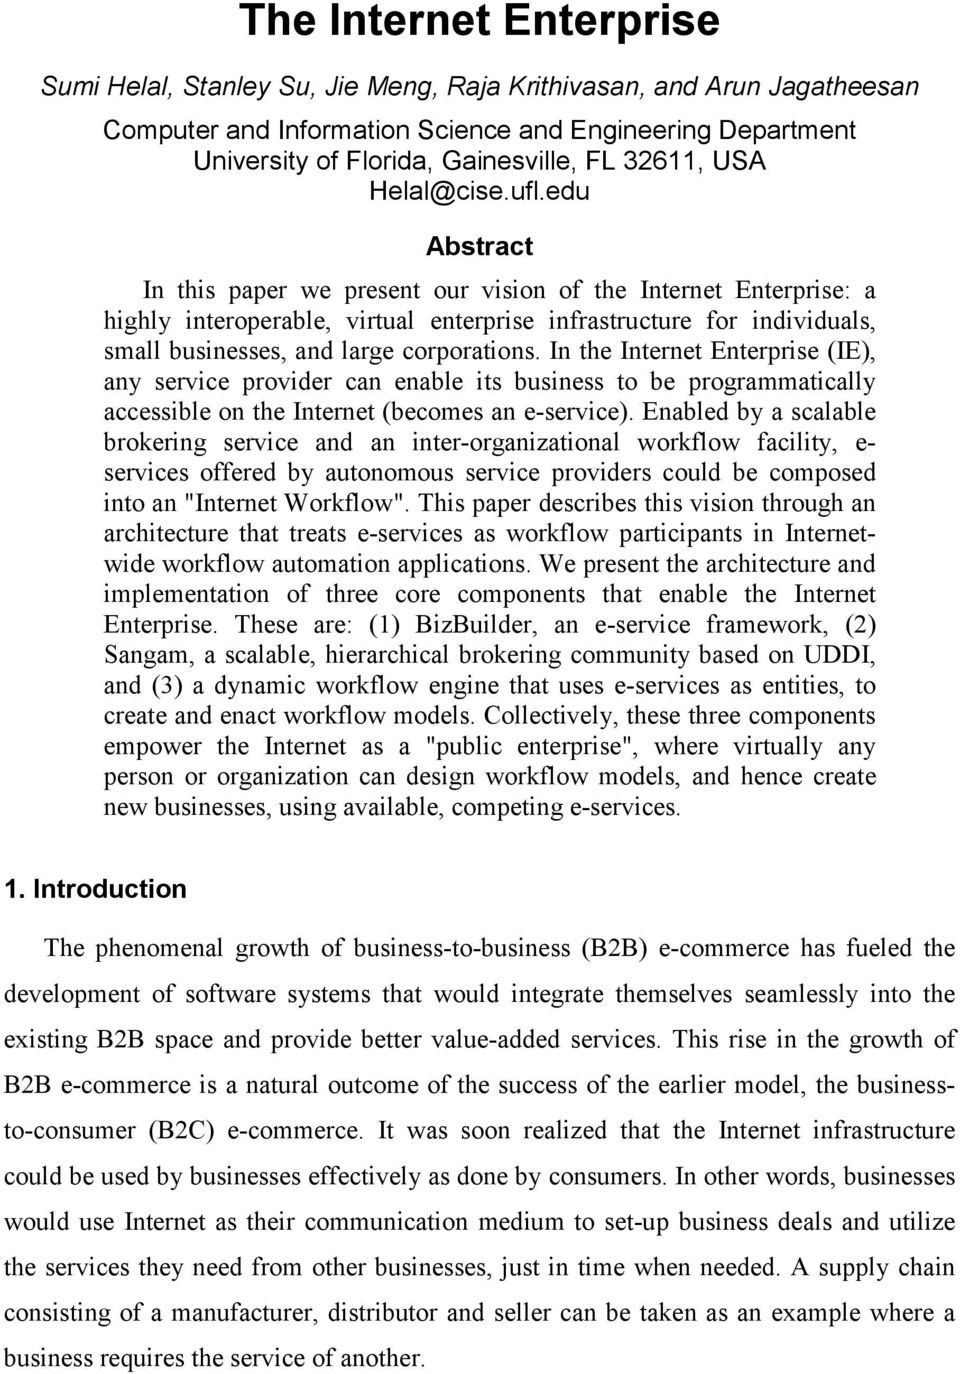 edu Abstract In this paper we present our vision of the Internet Enterprise: a highly interoperable, virtual enterprise infrastructure for individuals, small businesses, and large corporations.